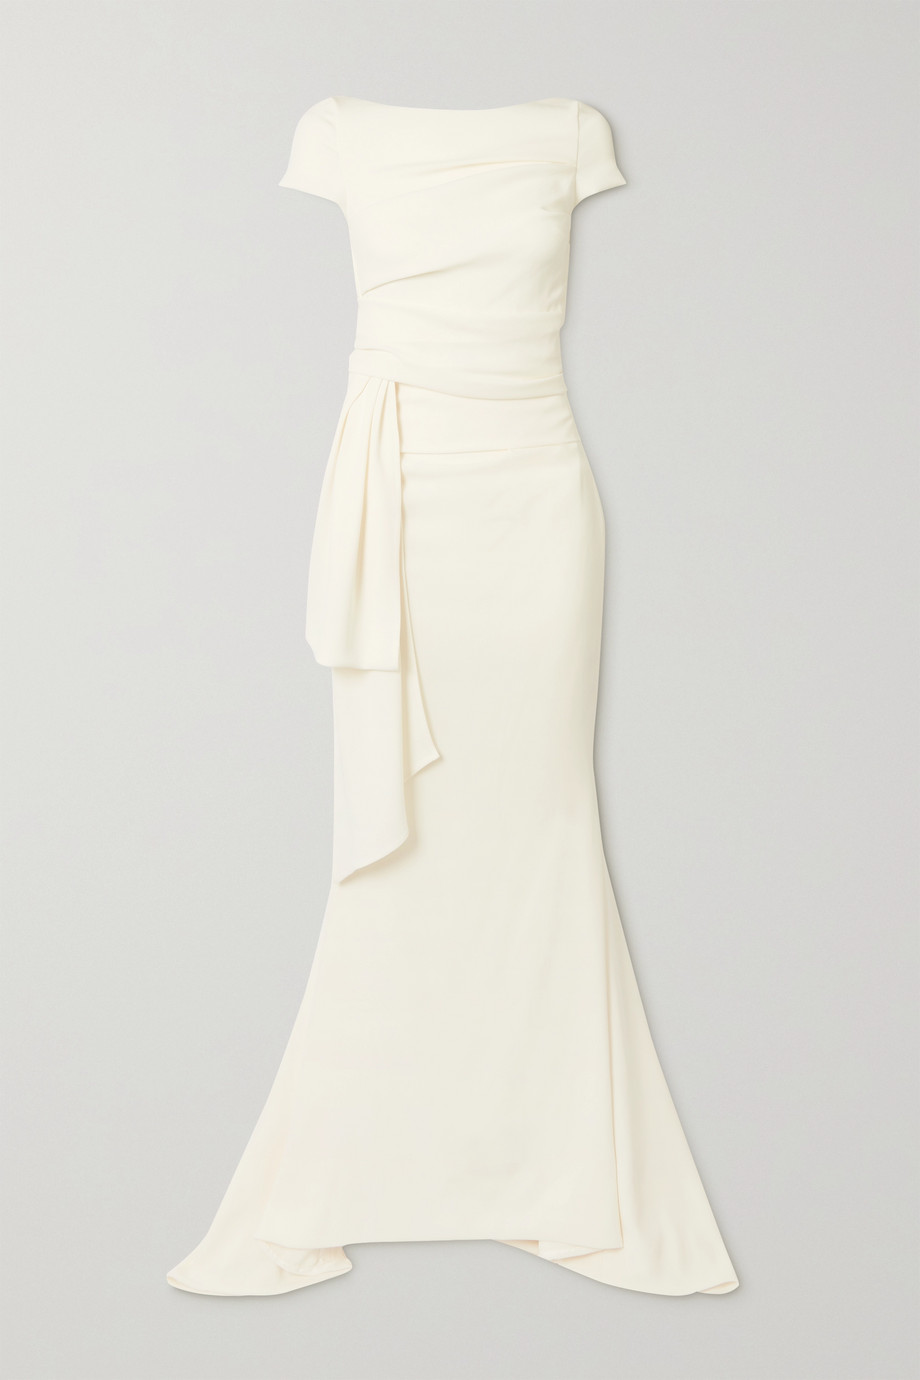 Talbot Runhof Bouvier gathered draped crepe gown